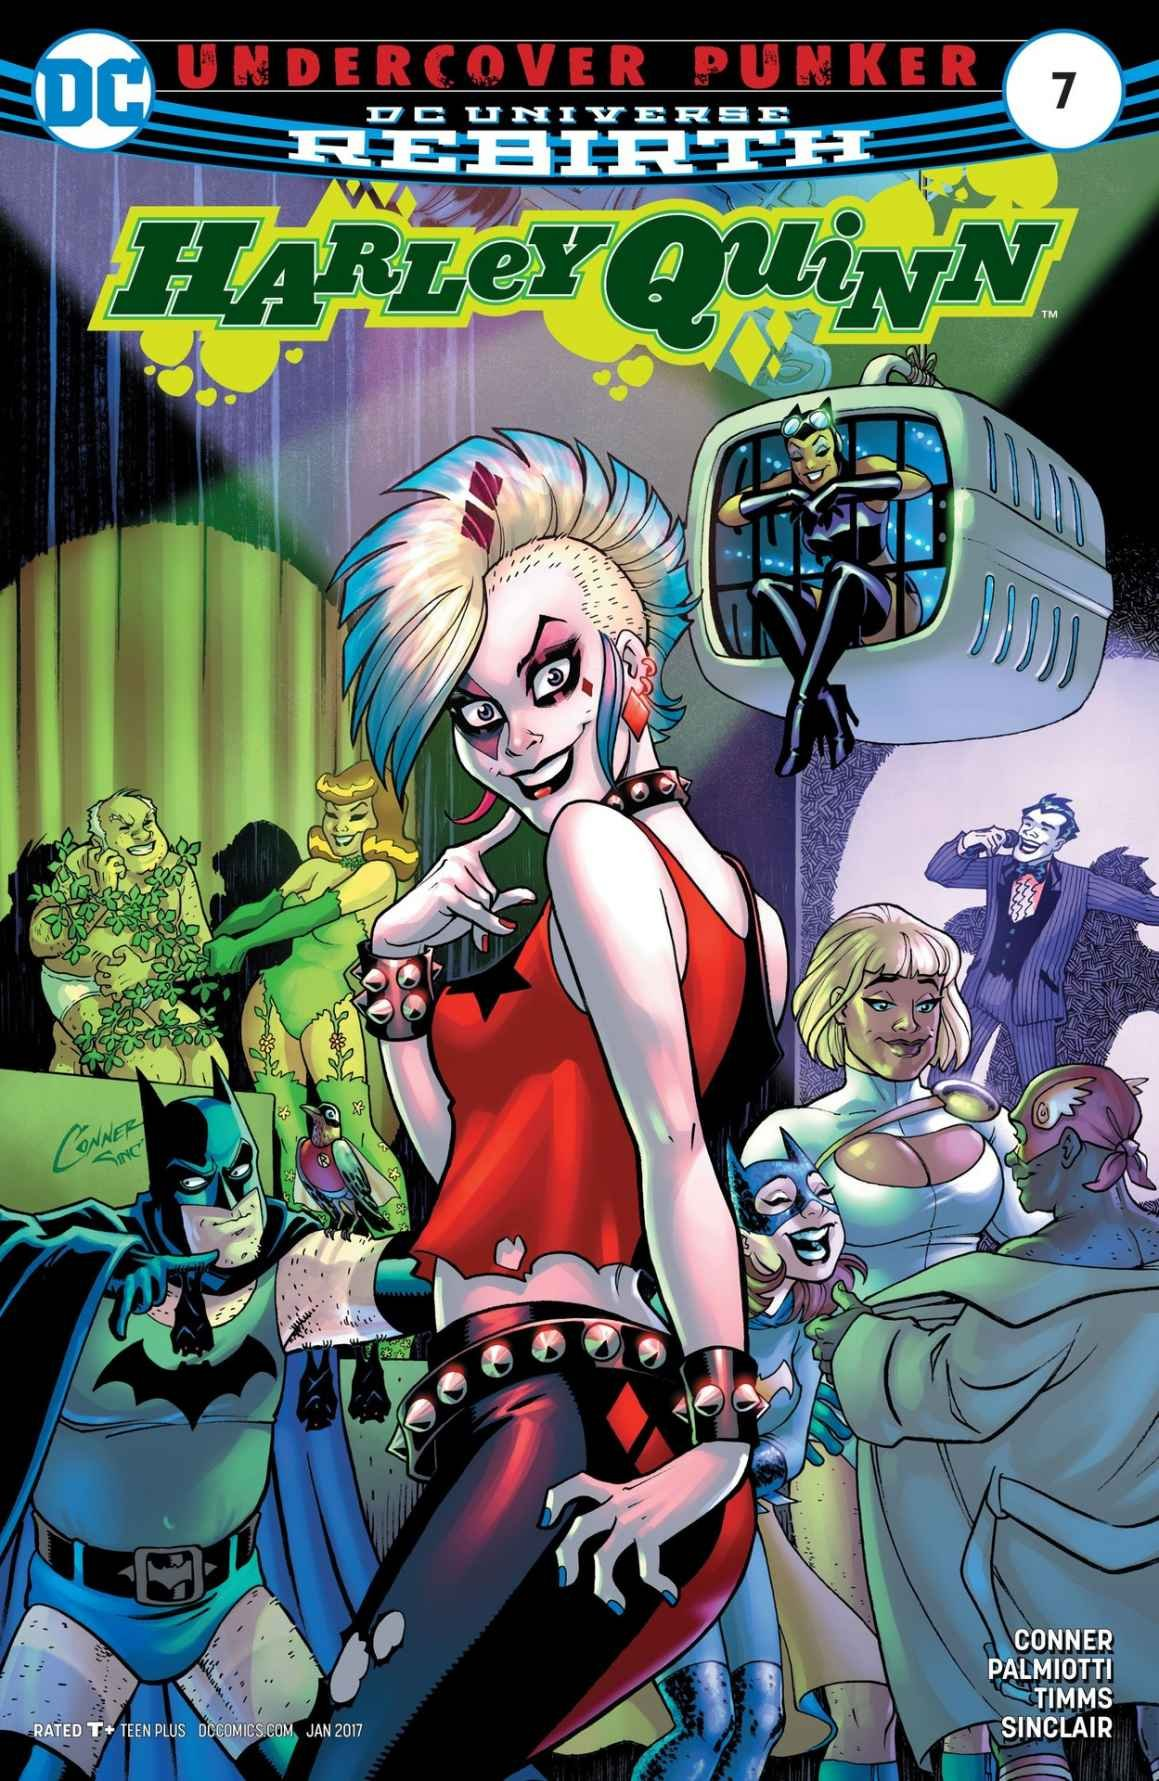 DC Comics Rebirth HARLEY QUINN #7 first printing cover A